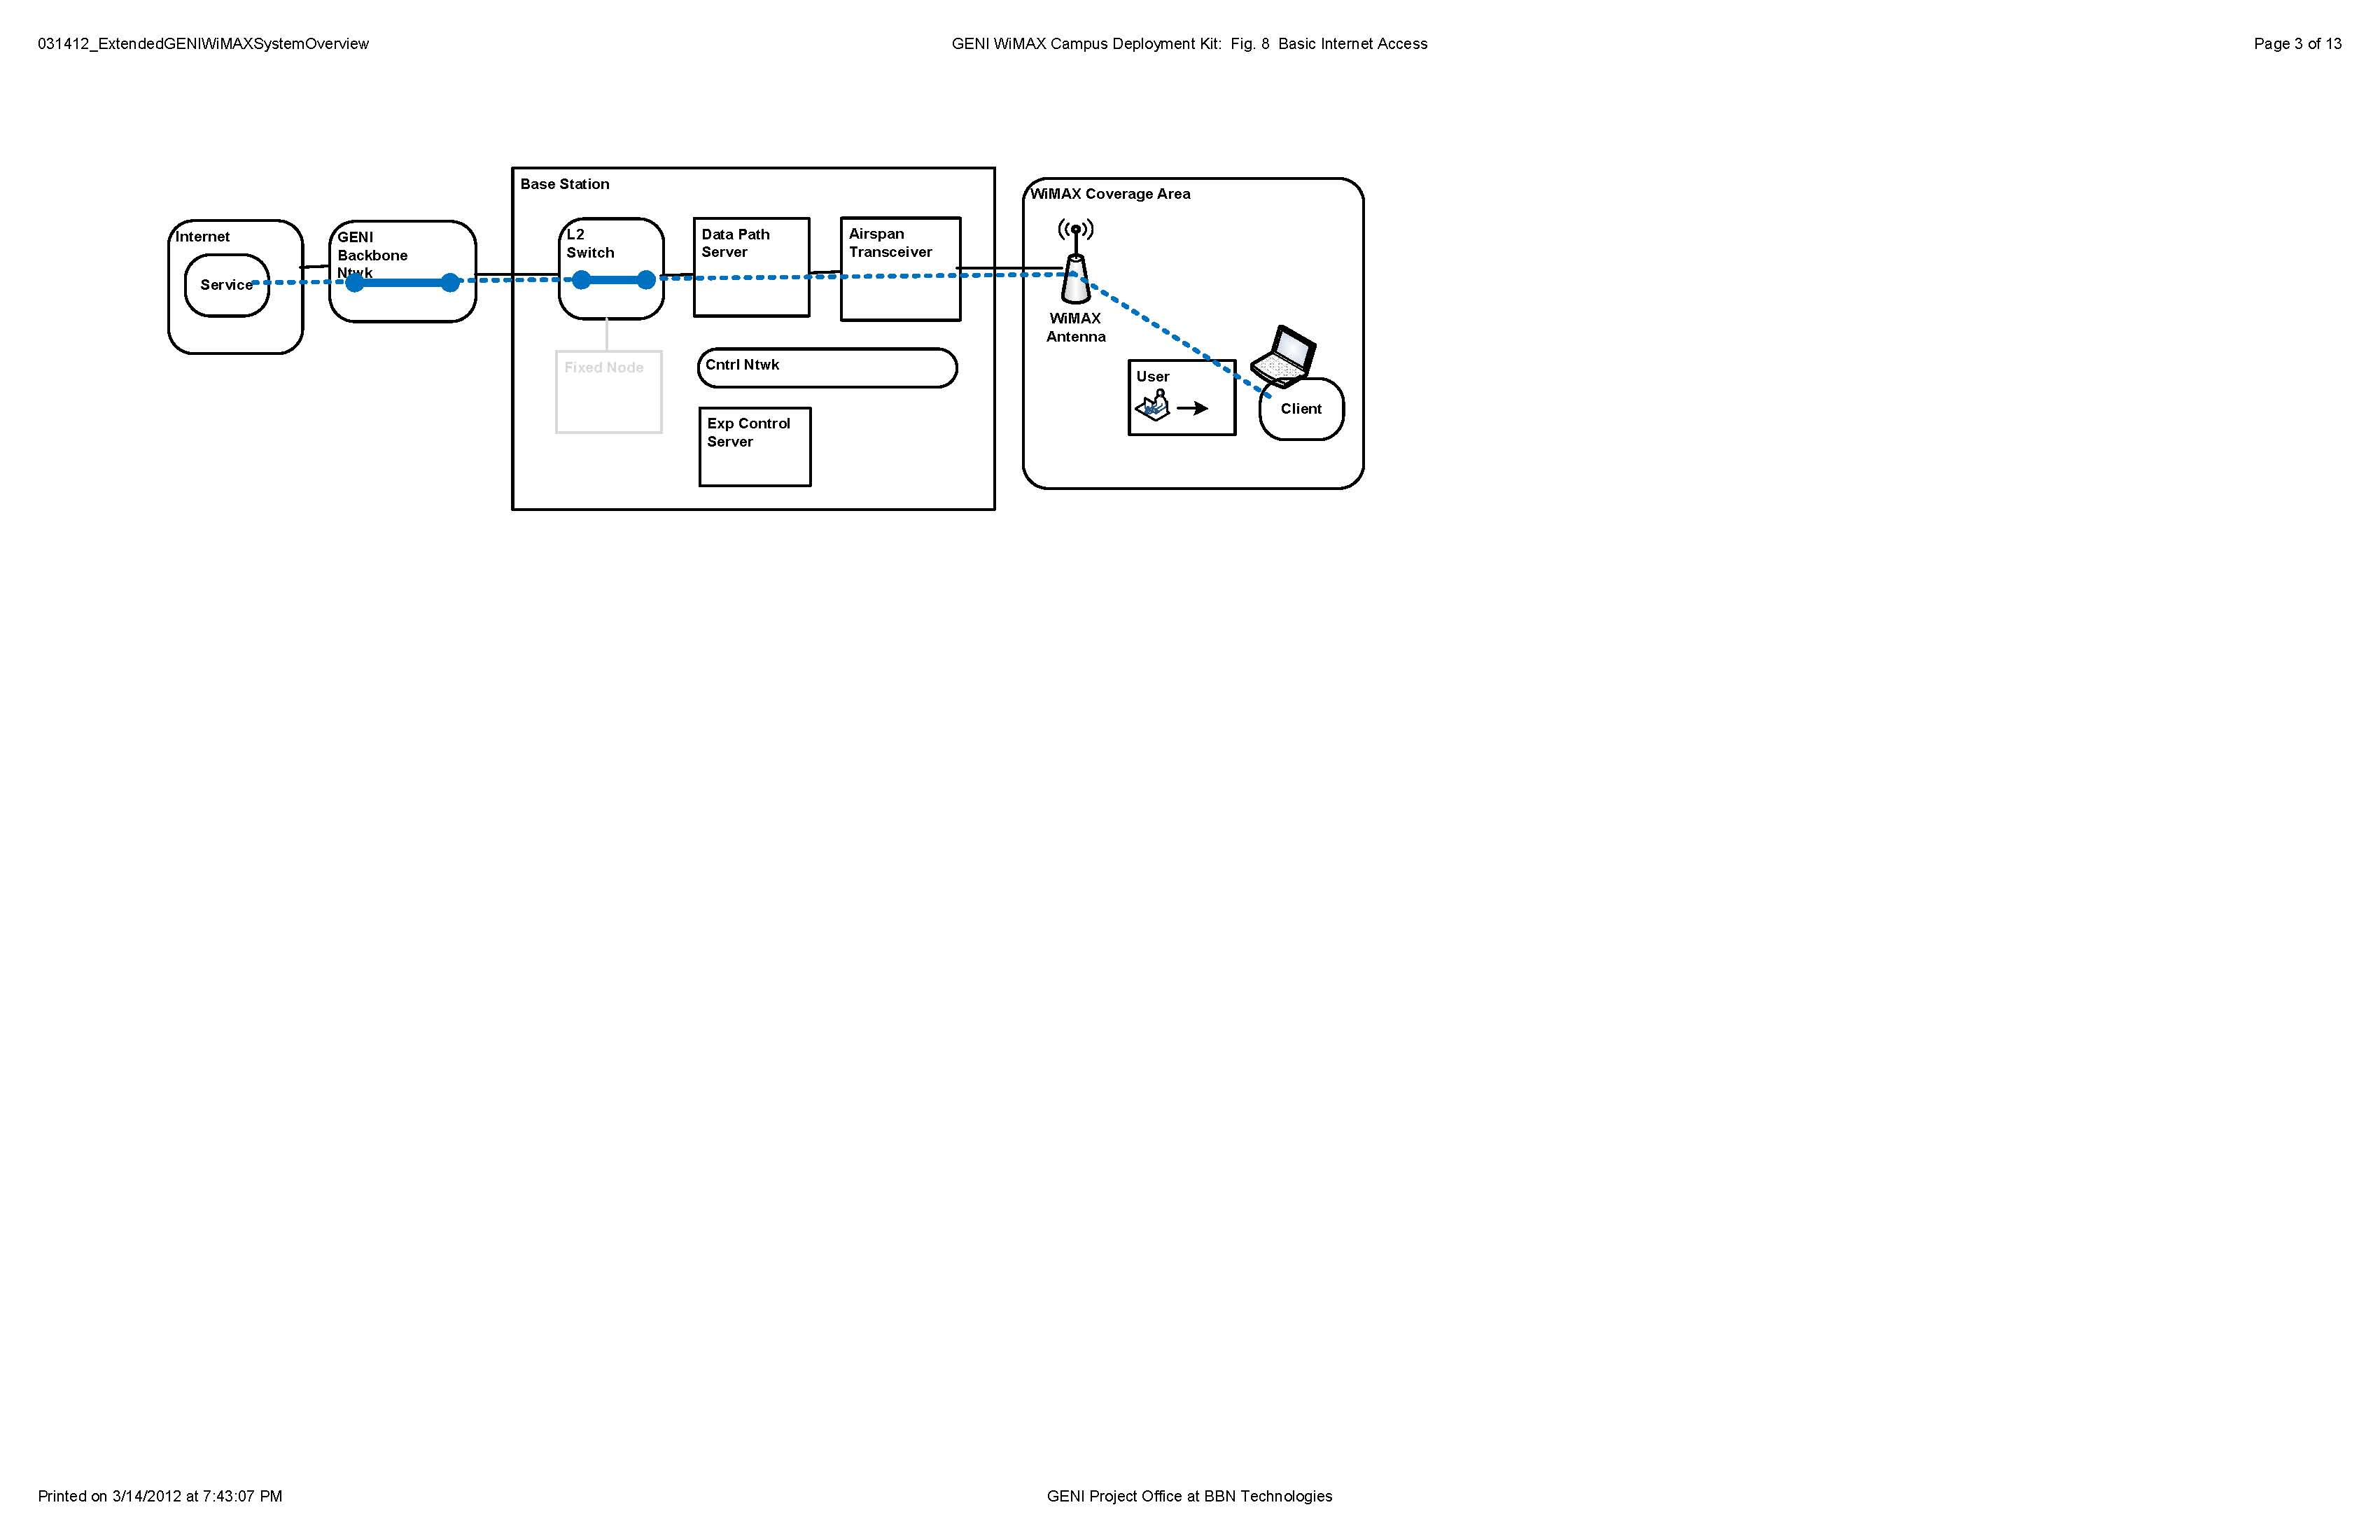 Visio-031412_ExtendedGENIWiMAXSystemOverview_Page_03.jpg